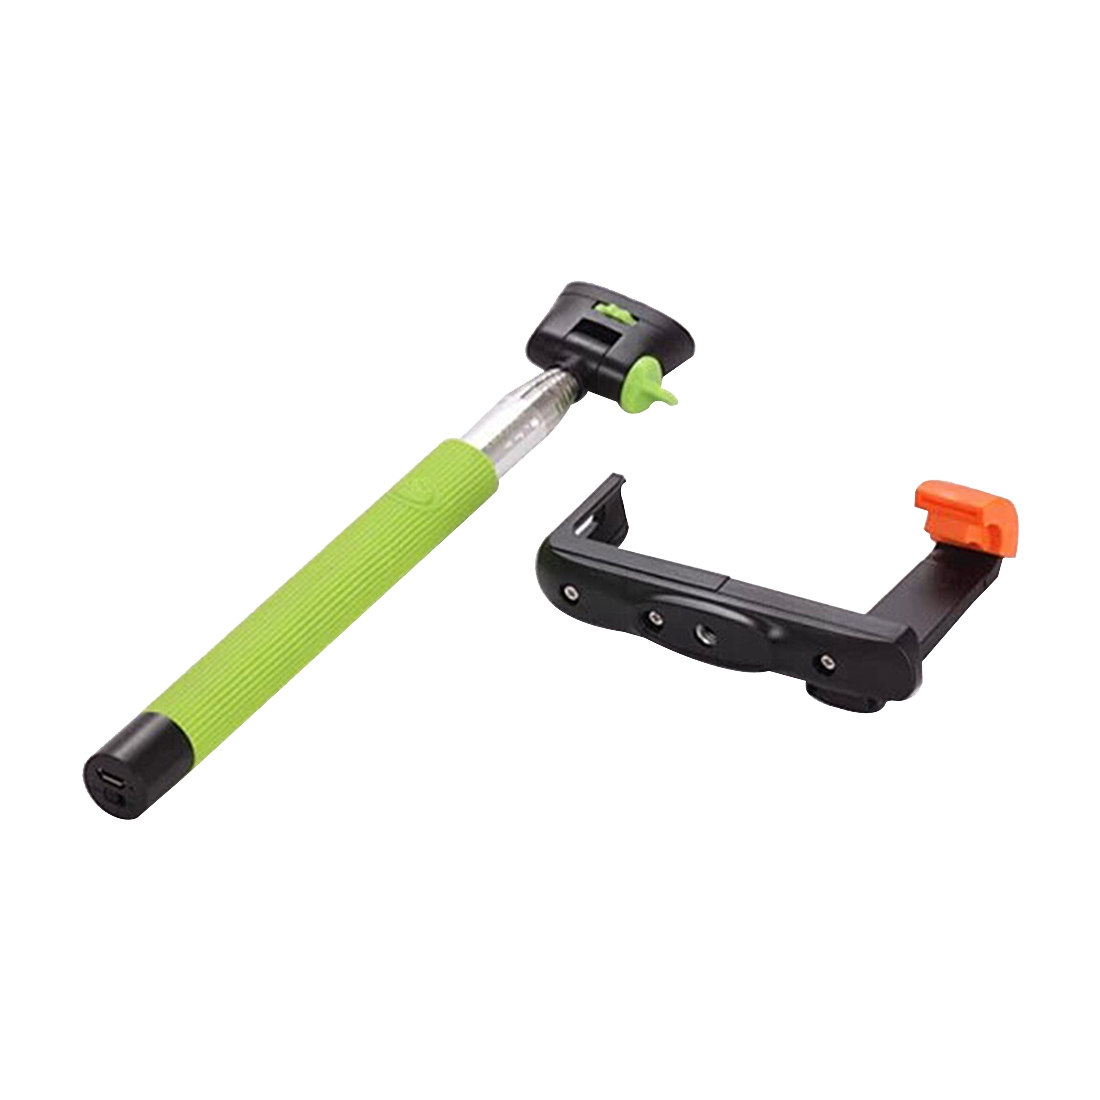 Extendable Handheld Wireless Bluetooth Selfie Stick For Android Phone green